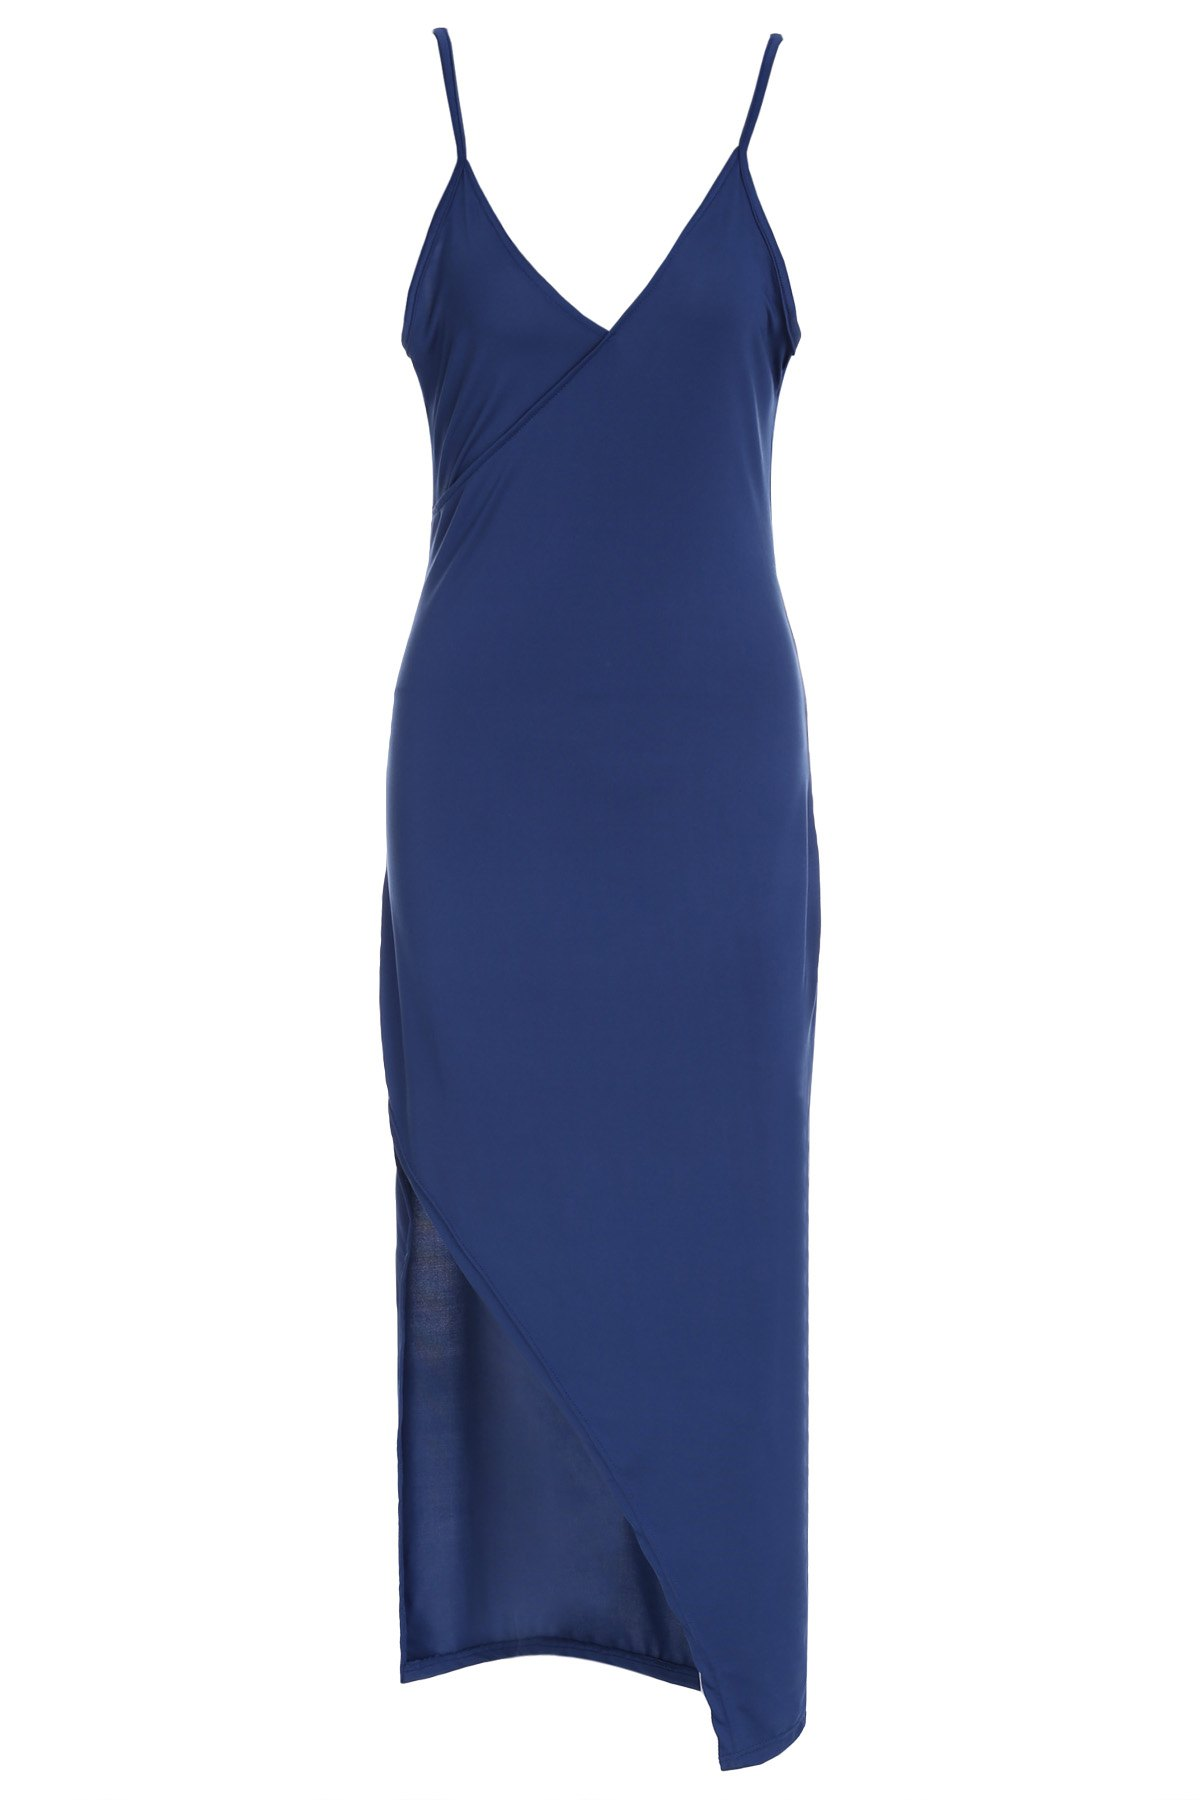 Sexy Solid Color Spaghetti Strap High Slit Sleeveless Dress For Women - CADETBLUE S